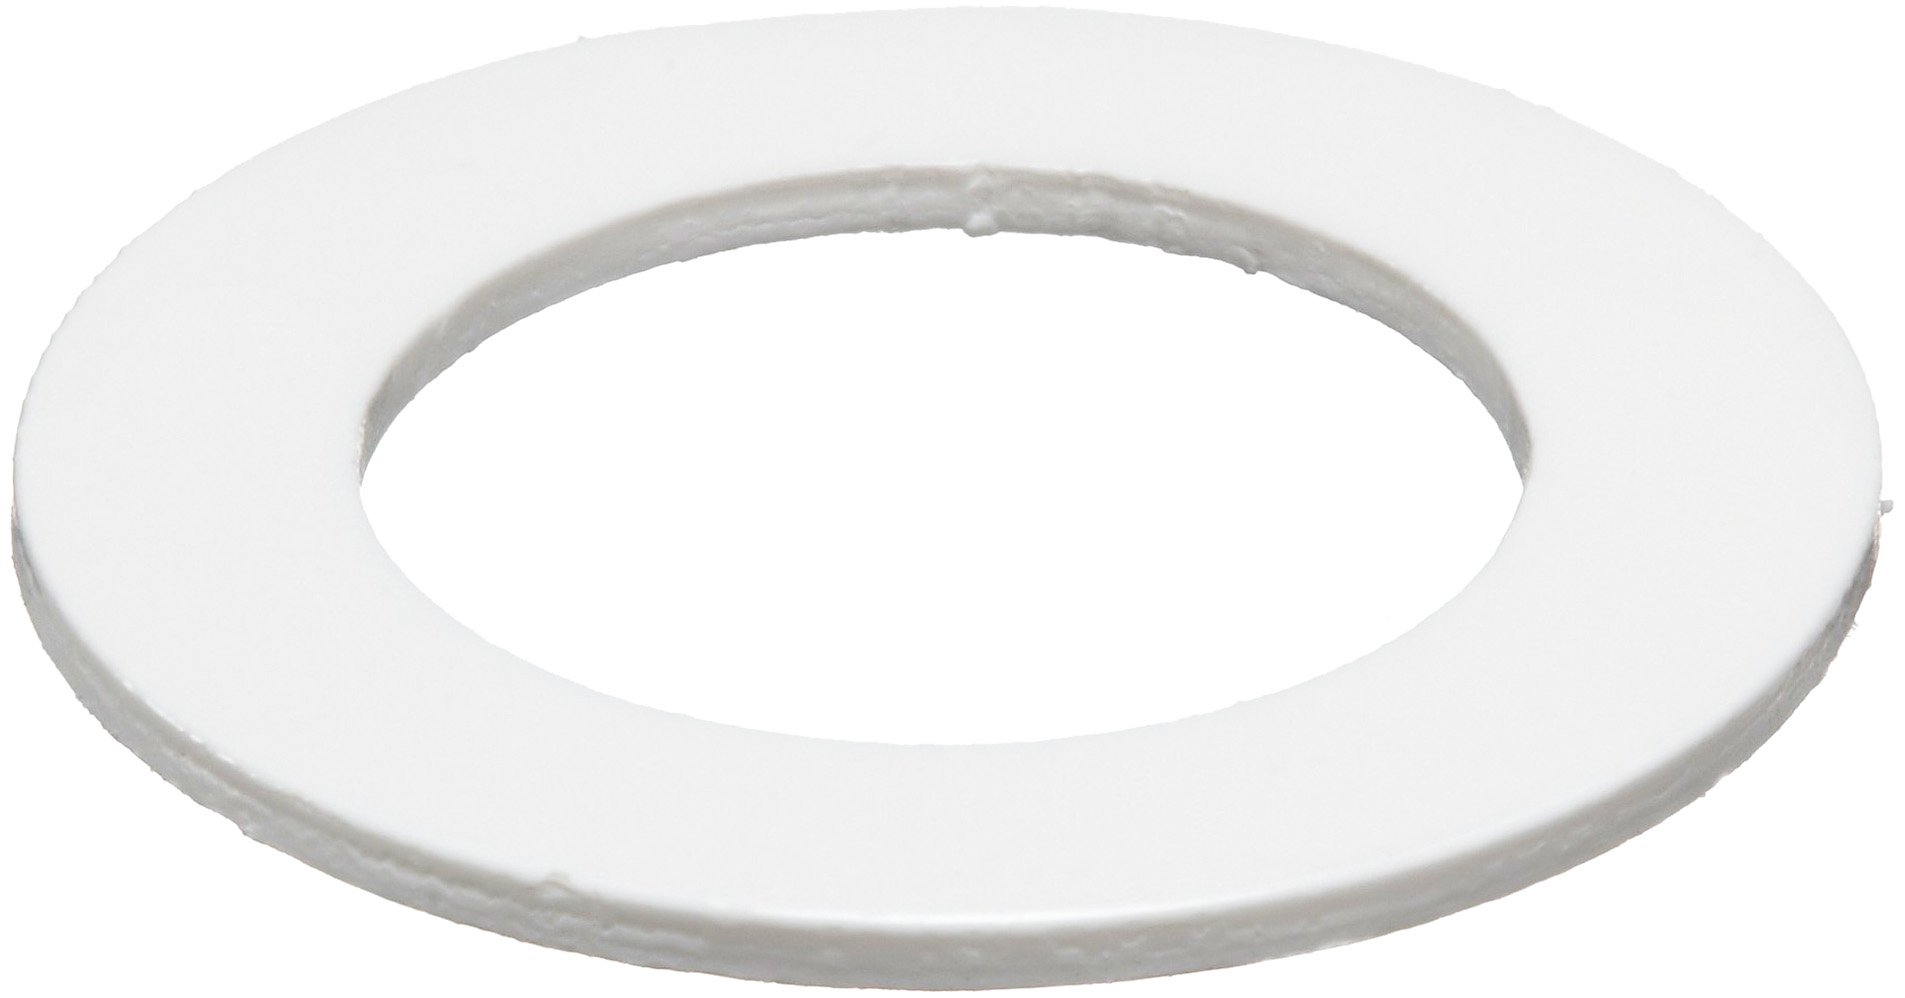 PVC (Polyvinyl Chloride) Round Shim, White, 0.025'' Thickness, 1'' ID, 1-1/2'' OD (Pack of 10) by Small Parts